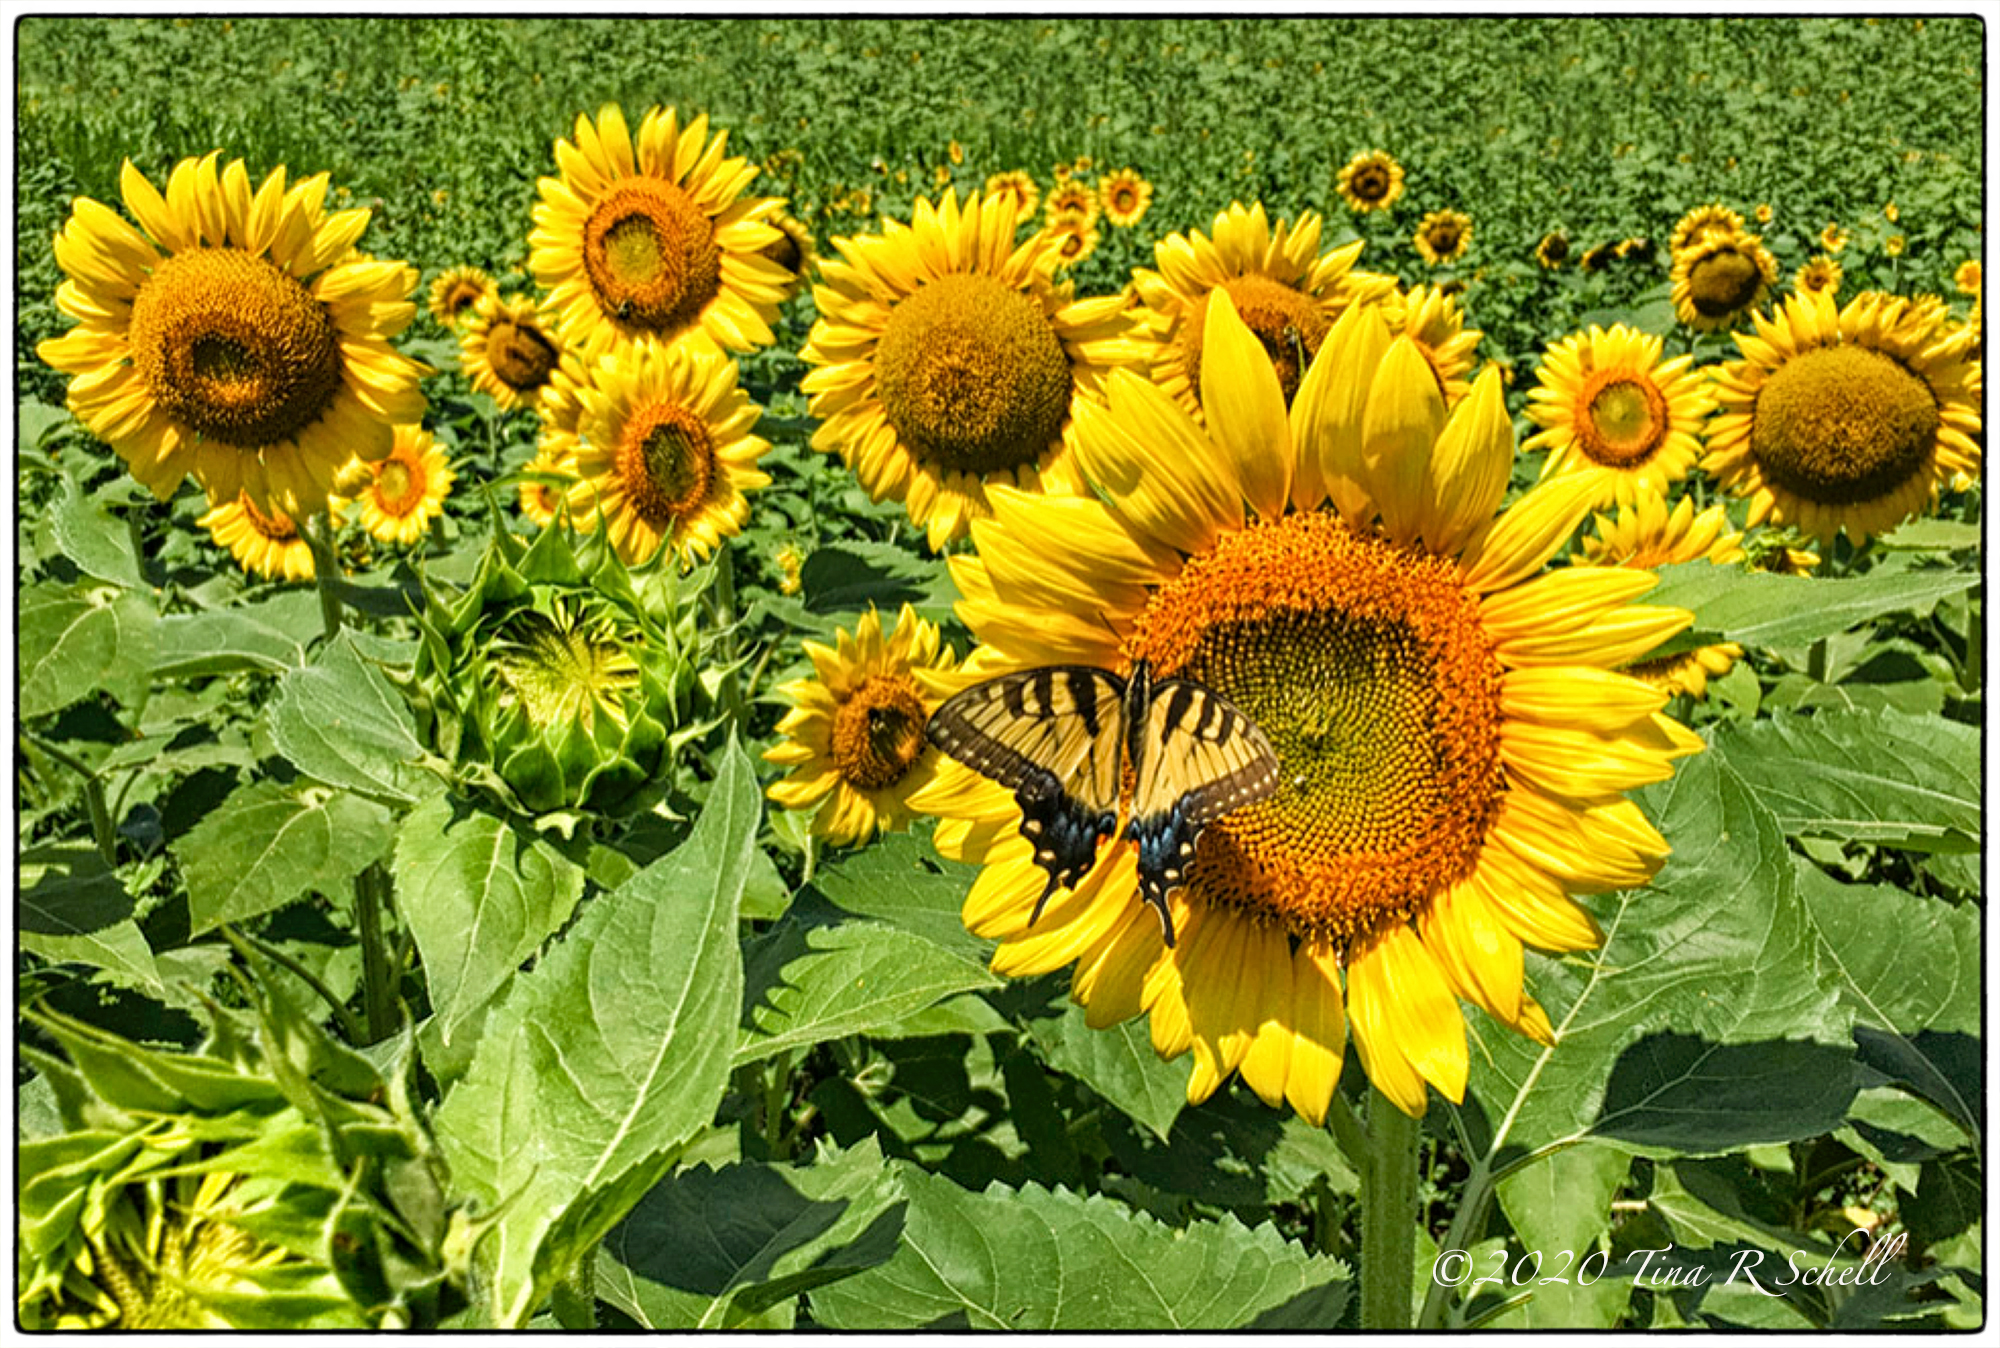 sunflowers, butterfly, yellow